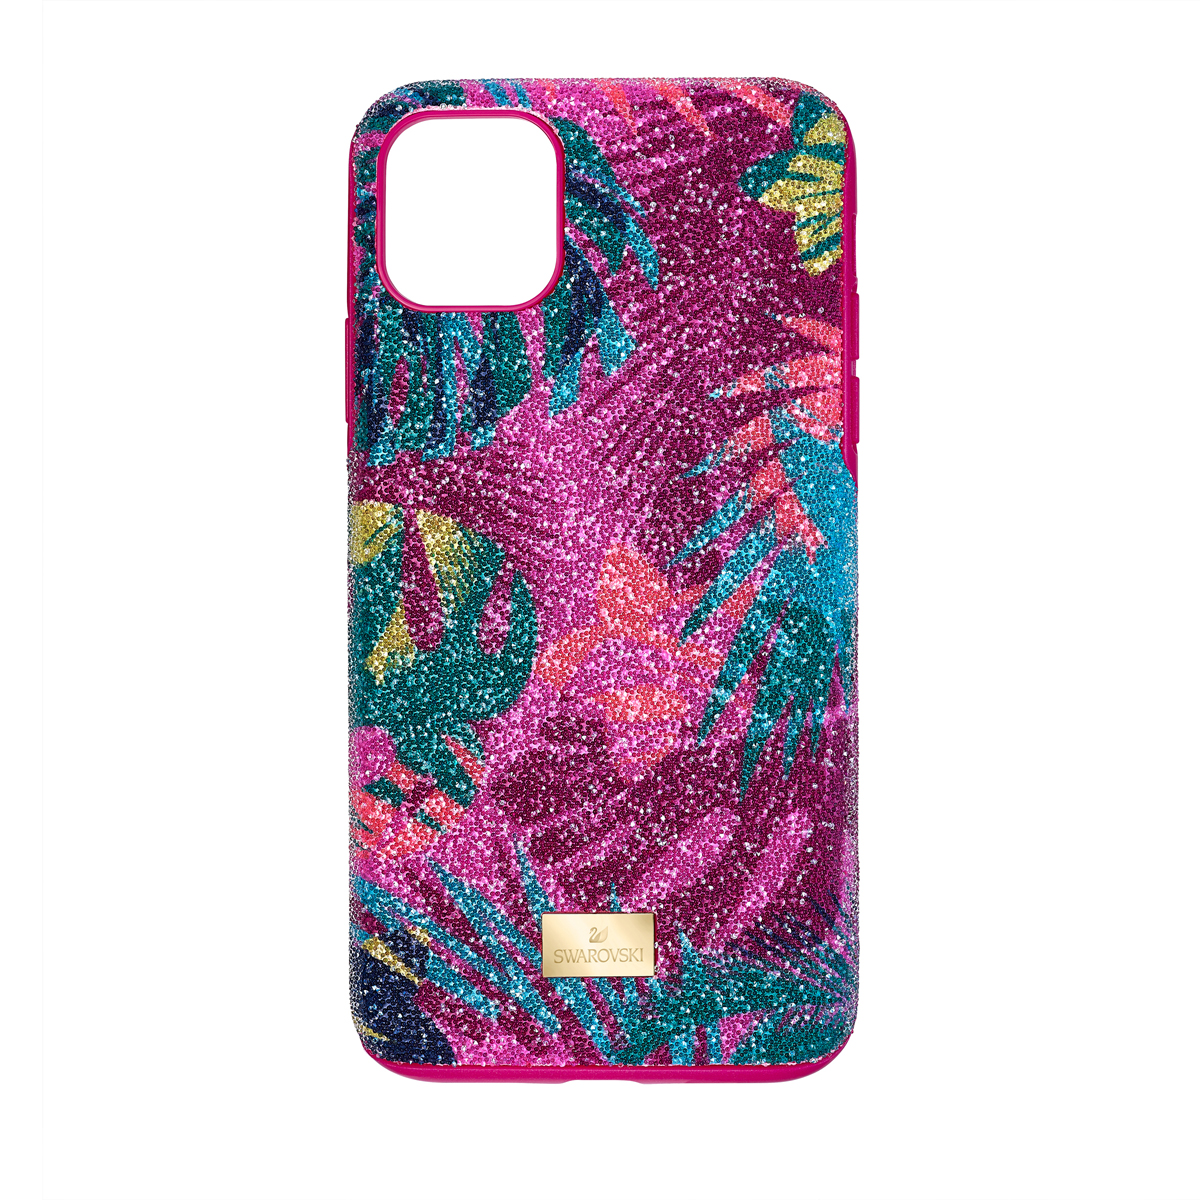 Swarovski Mobile Phone Case Tropical iPhone 11 Pro Max Case Multi Stainless Steel Shiny Gold